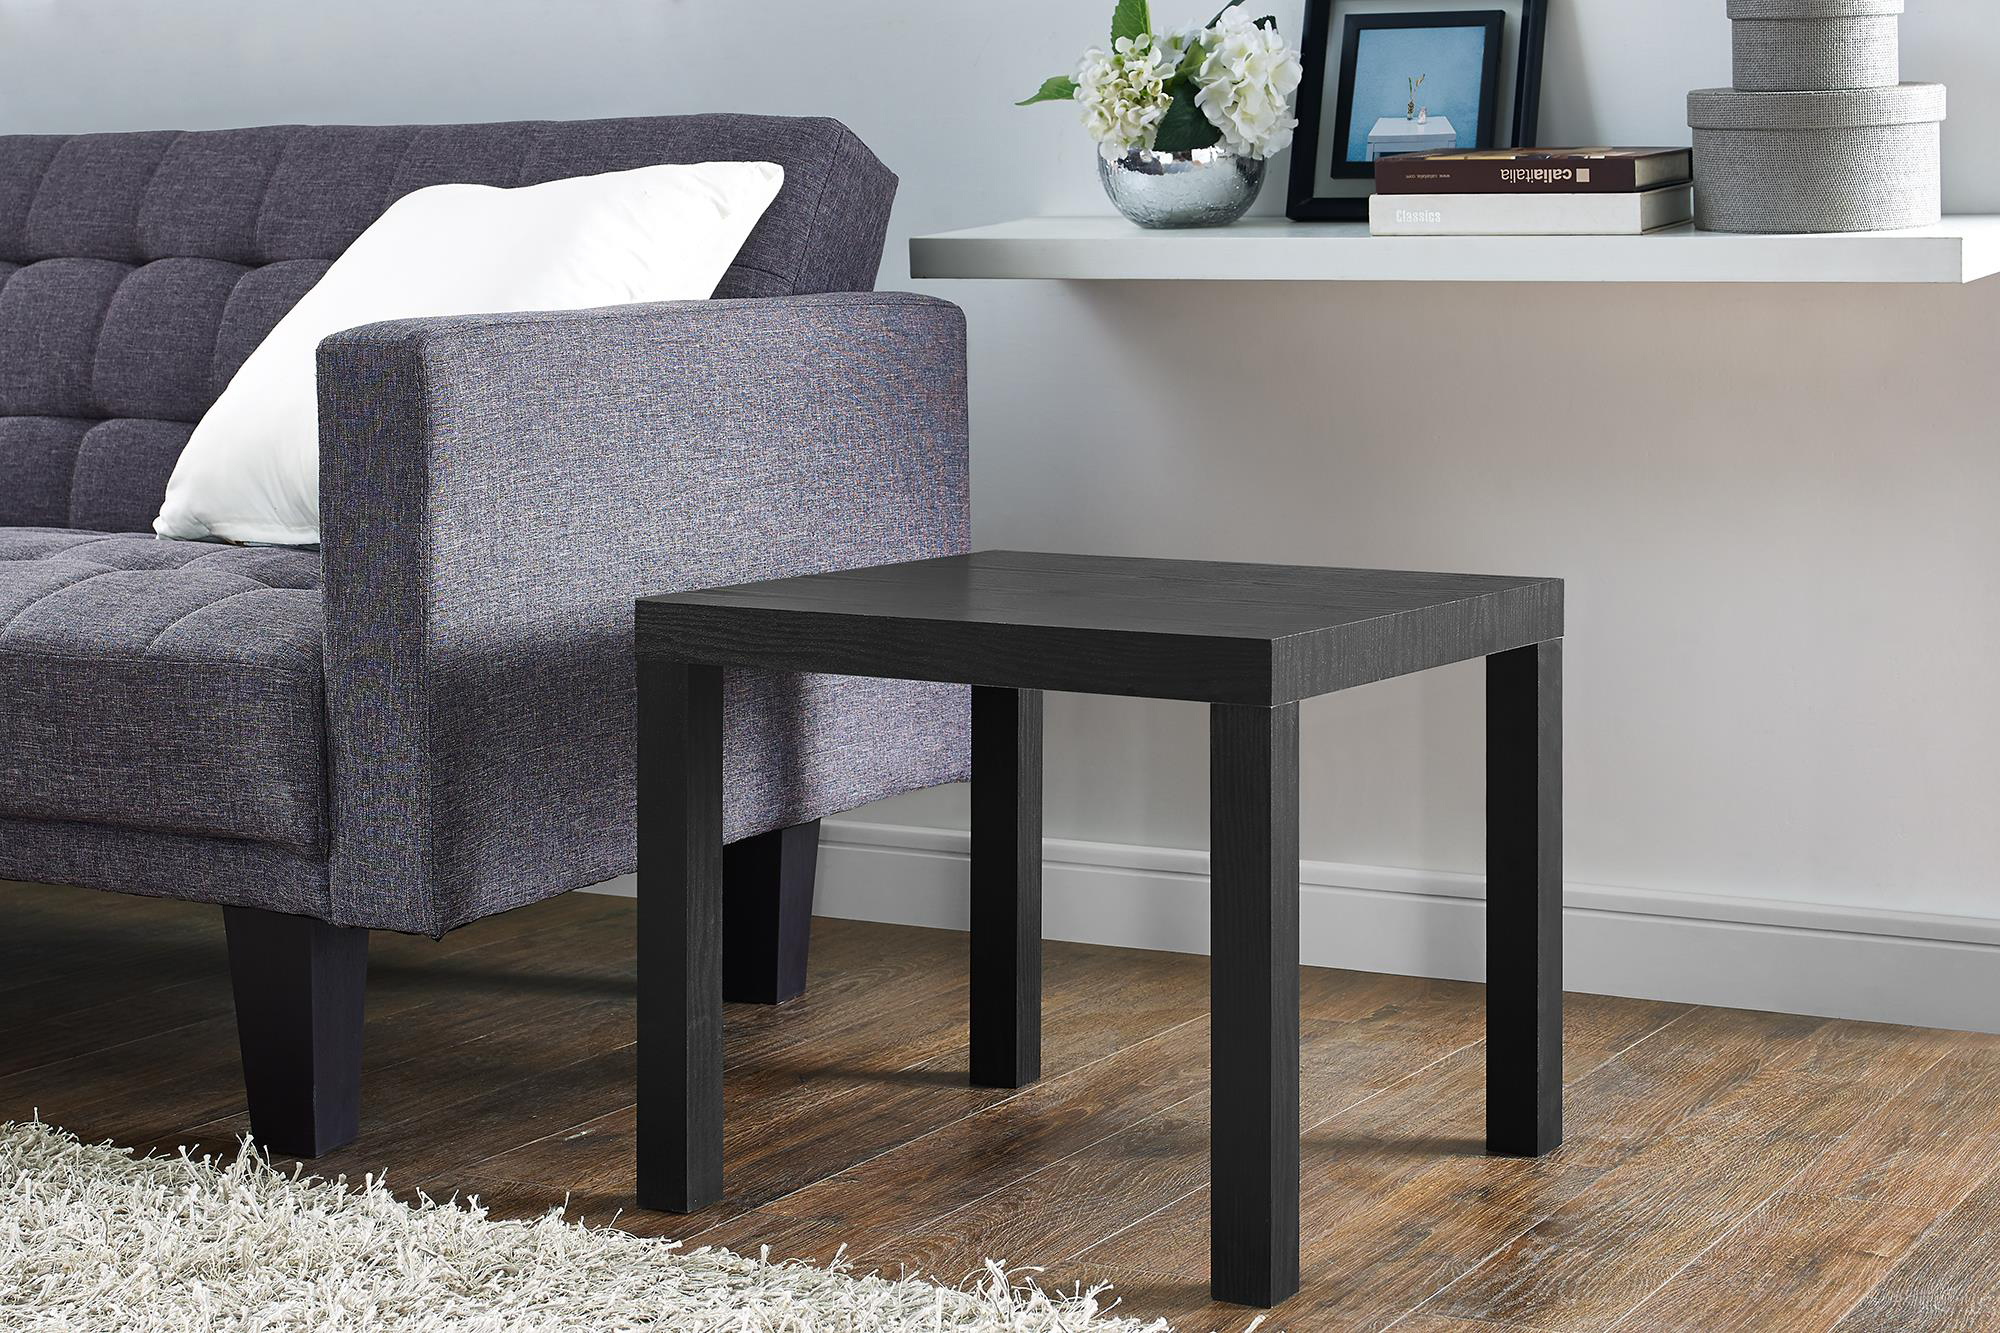 Attractive Mainstays Parsons End Table, Multiple Colors   Walmart.com